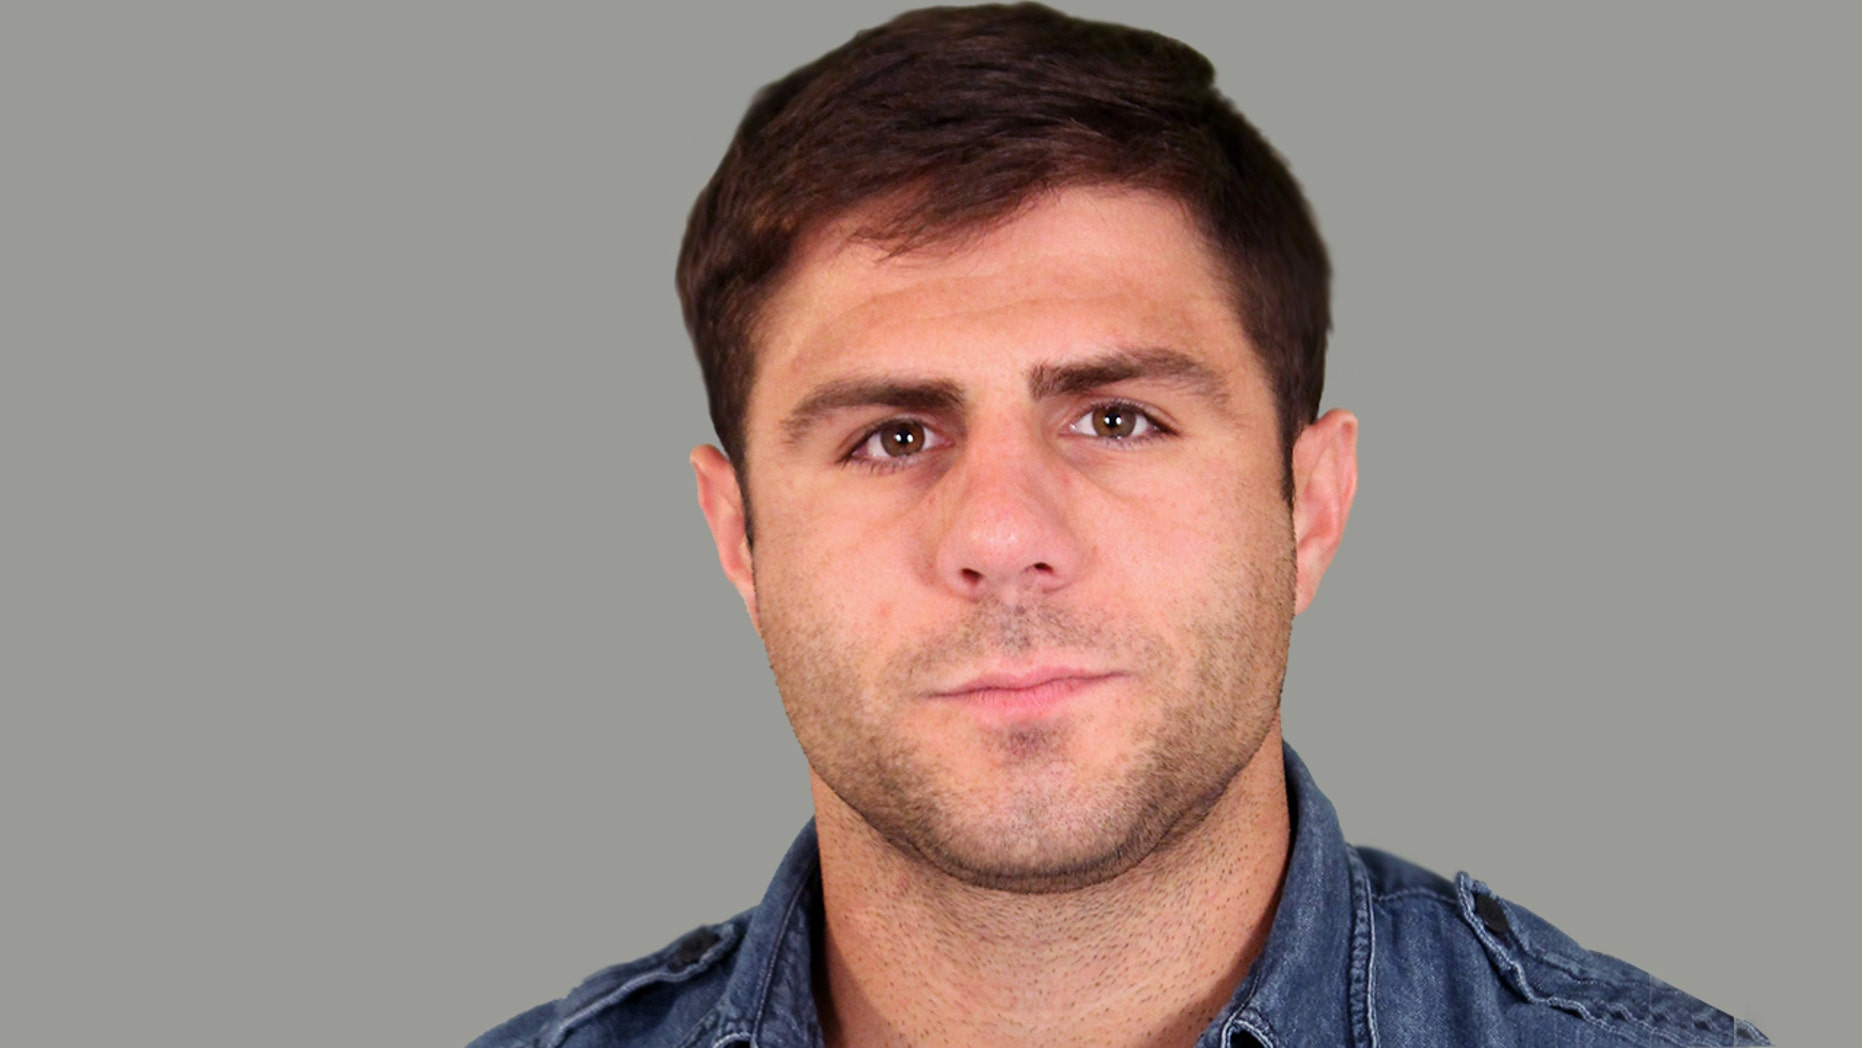 James Merse was planning to speak to NYU's College Republicans, but the club cancelled after seeing one of his affiliations.